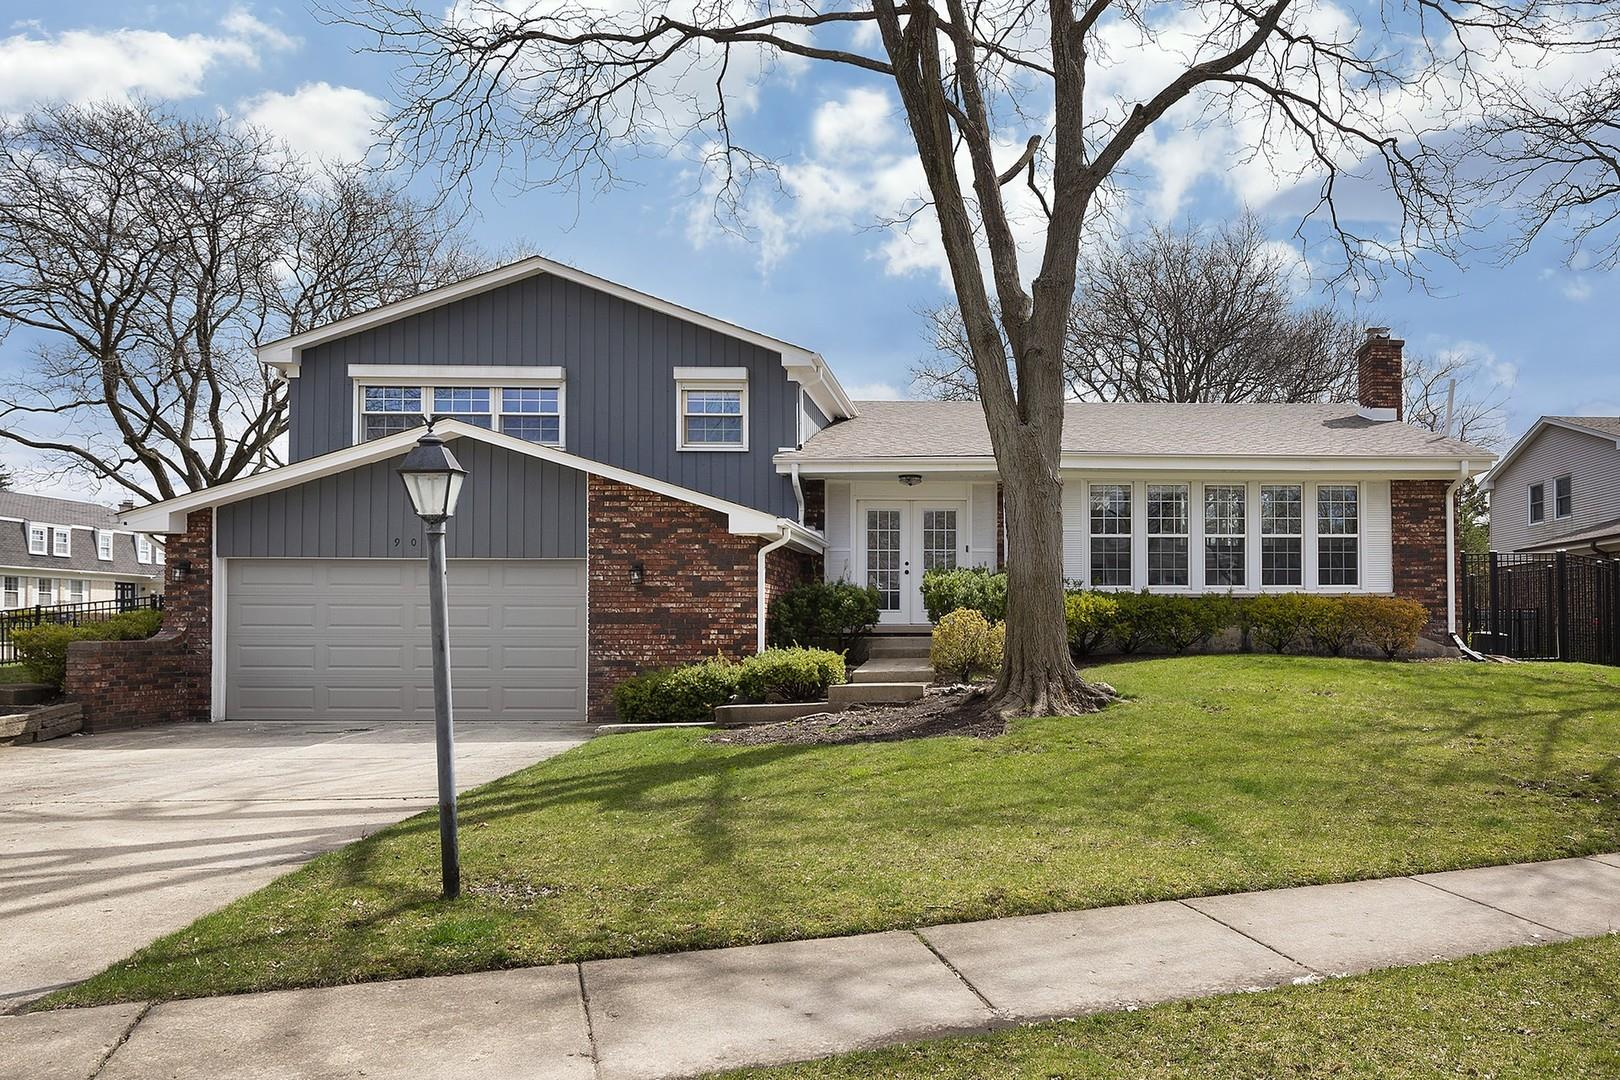 902 SUFFIELD Terrace, Northbrook, IL 60062 - #: 10851070